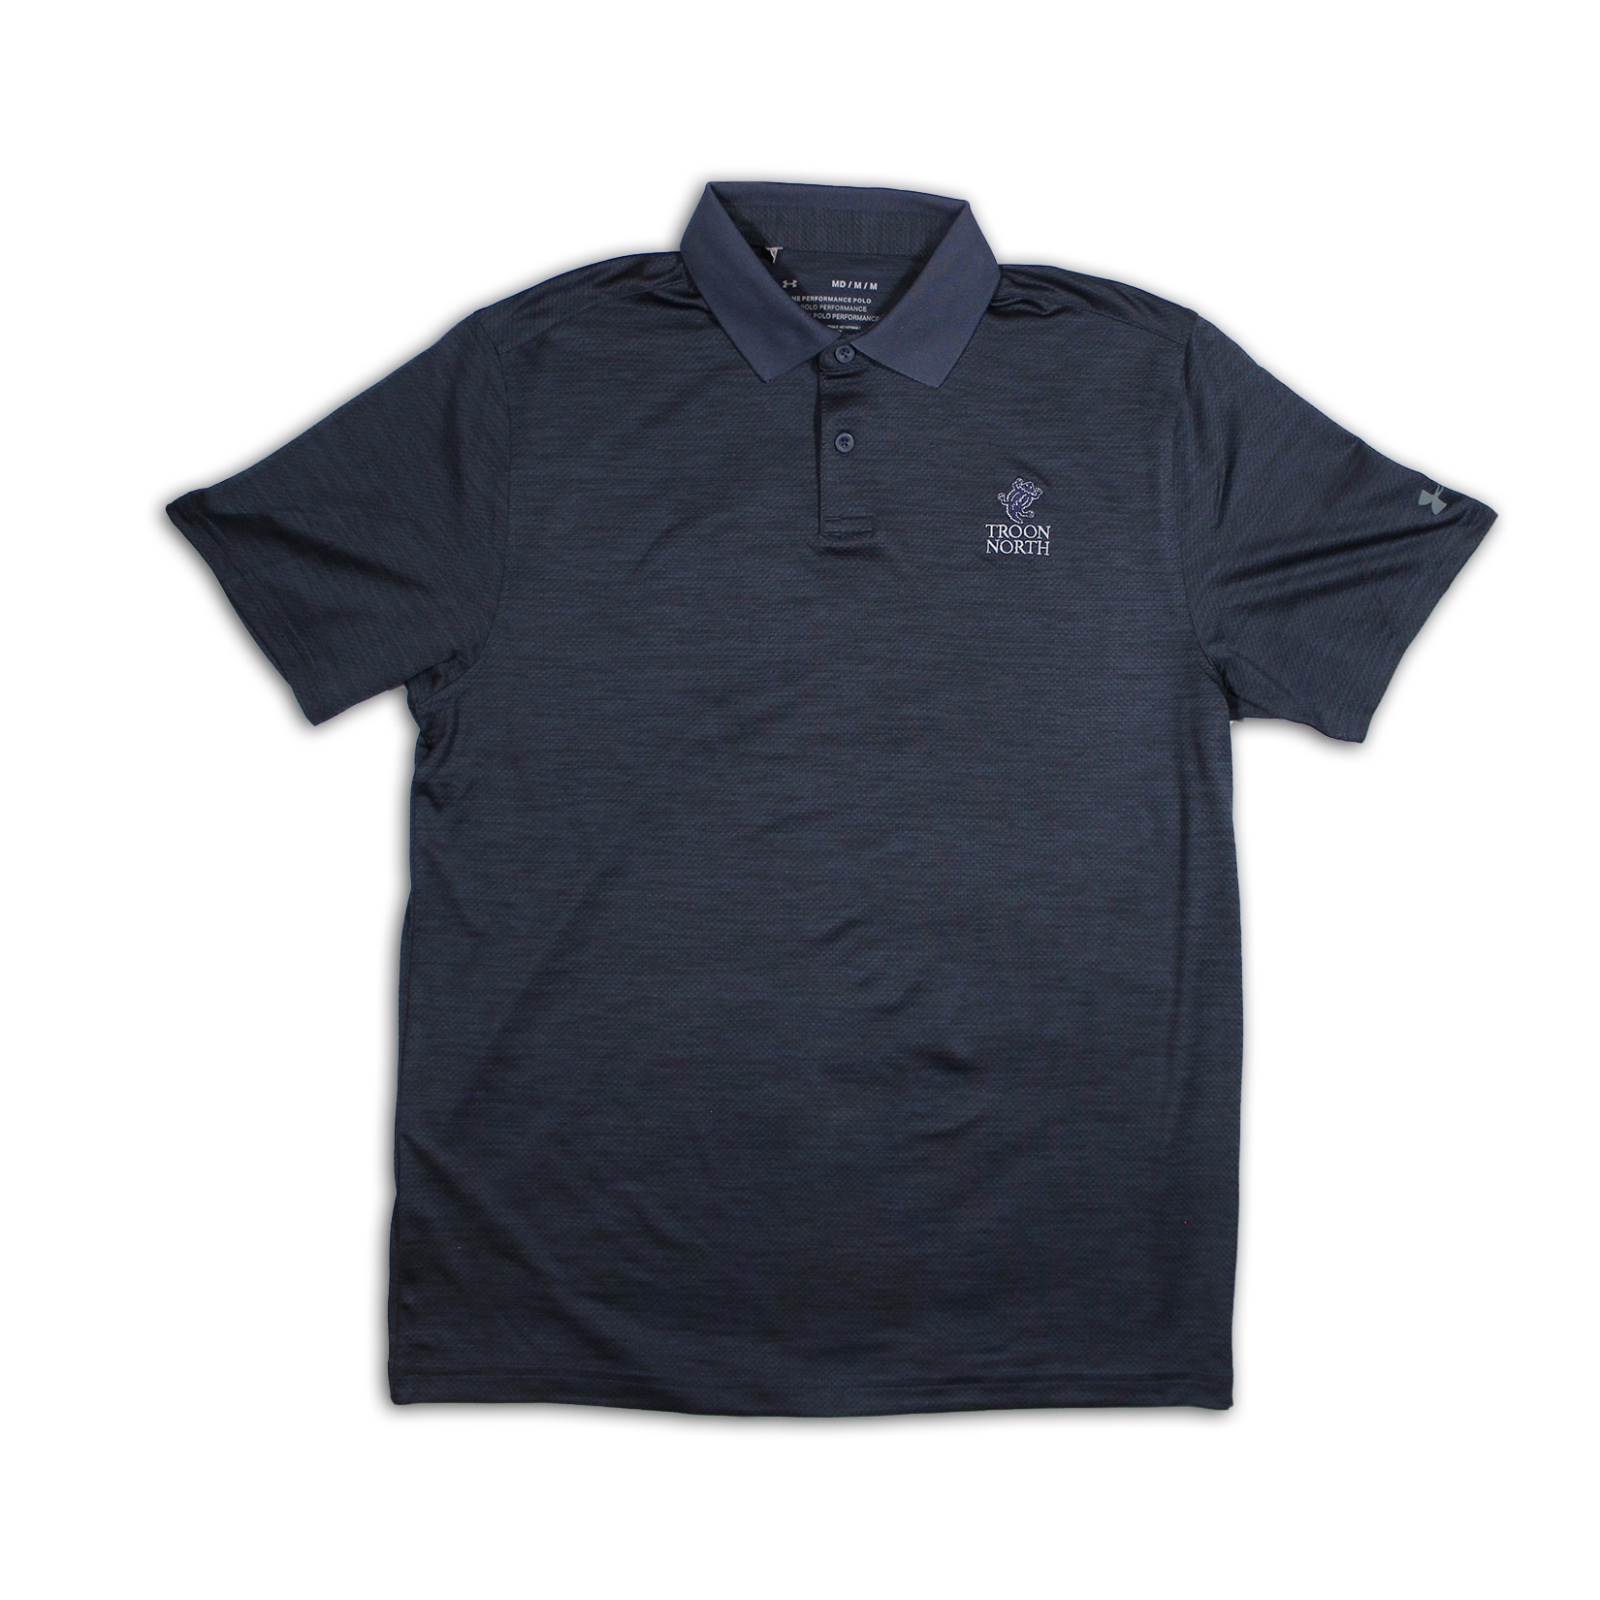 Under Armour Solid Navy Polo